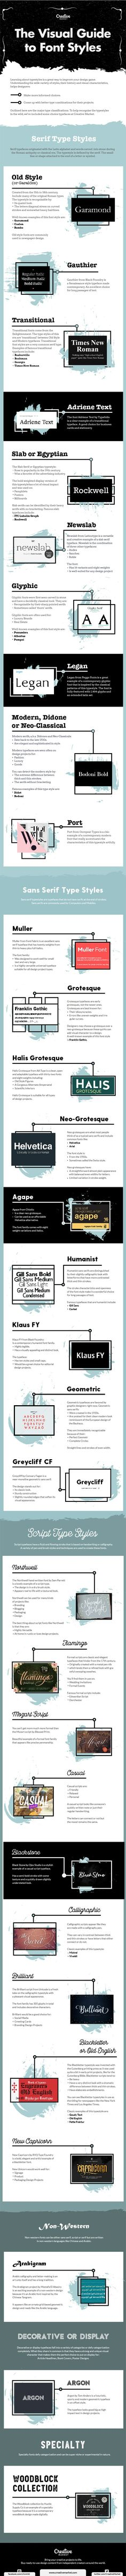 The Visual Guide to Font Styles - #Infographic